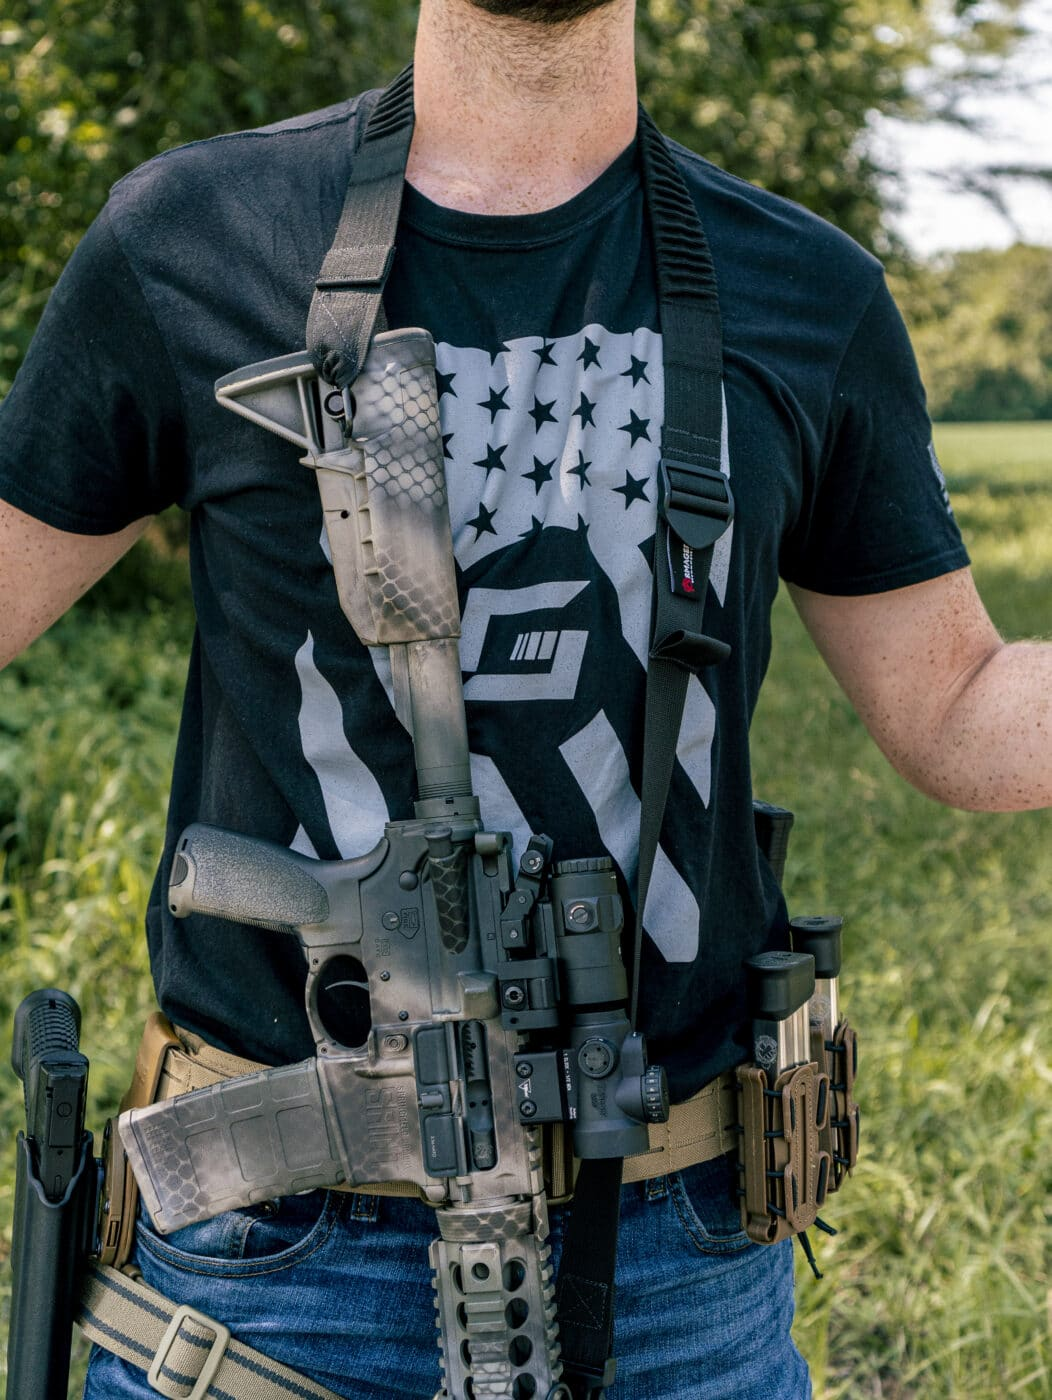 Man showing security of rifle with a sling